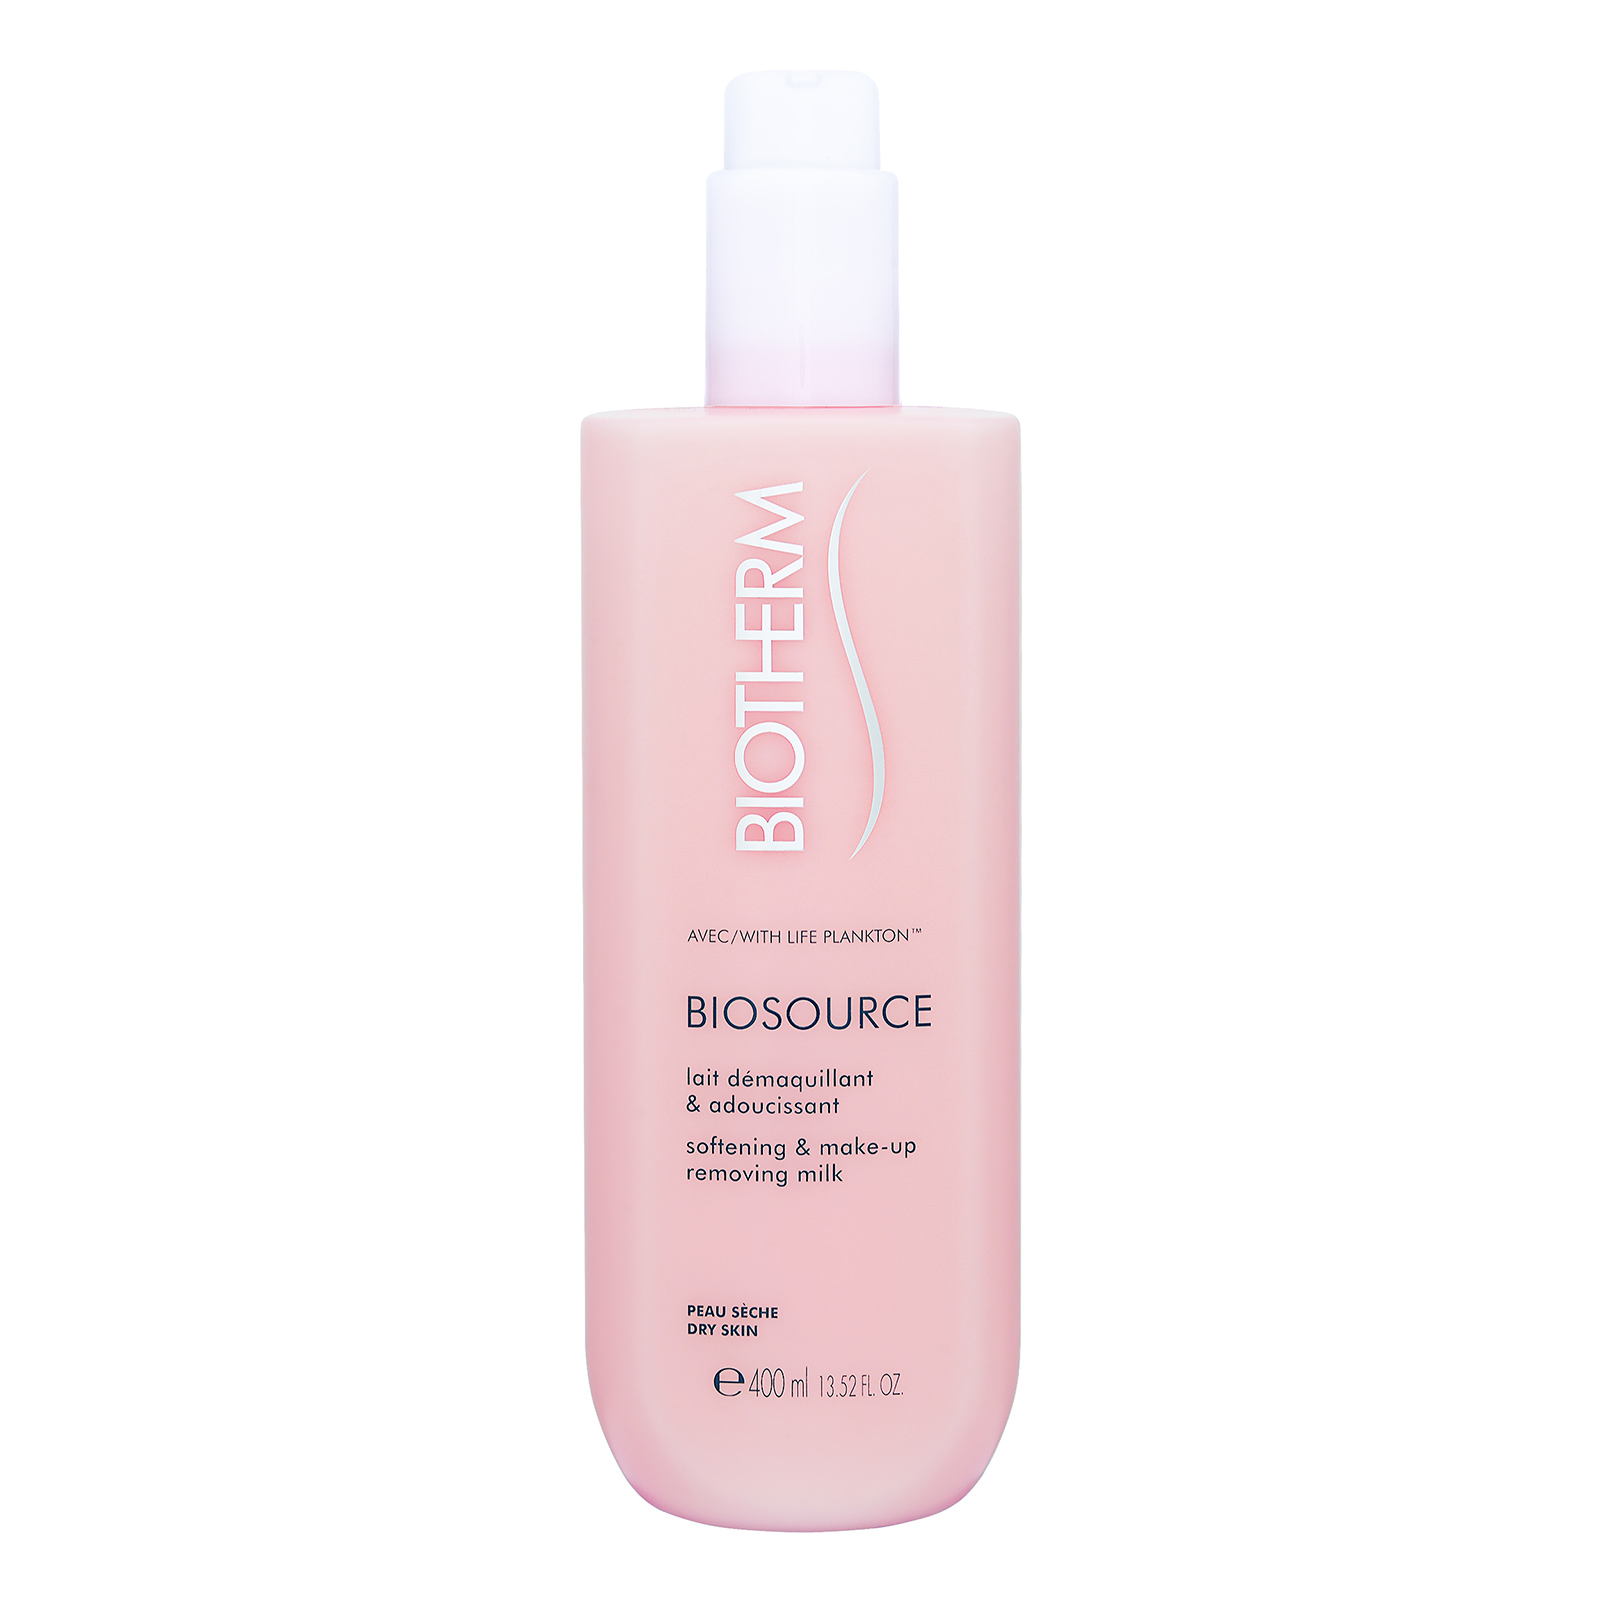 Biotherm Biosource  Softening & Make-Up Removing Milk (Dry Skin) 13.52oz, 400ml from Cosme-De.com